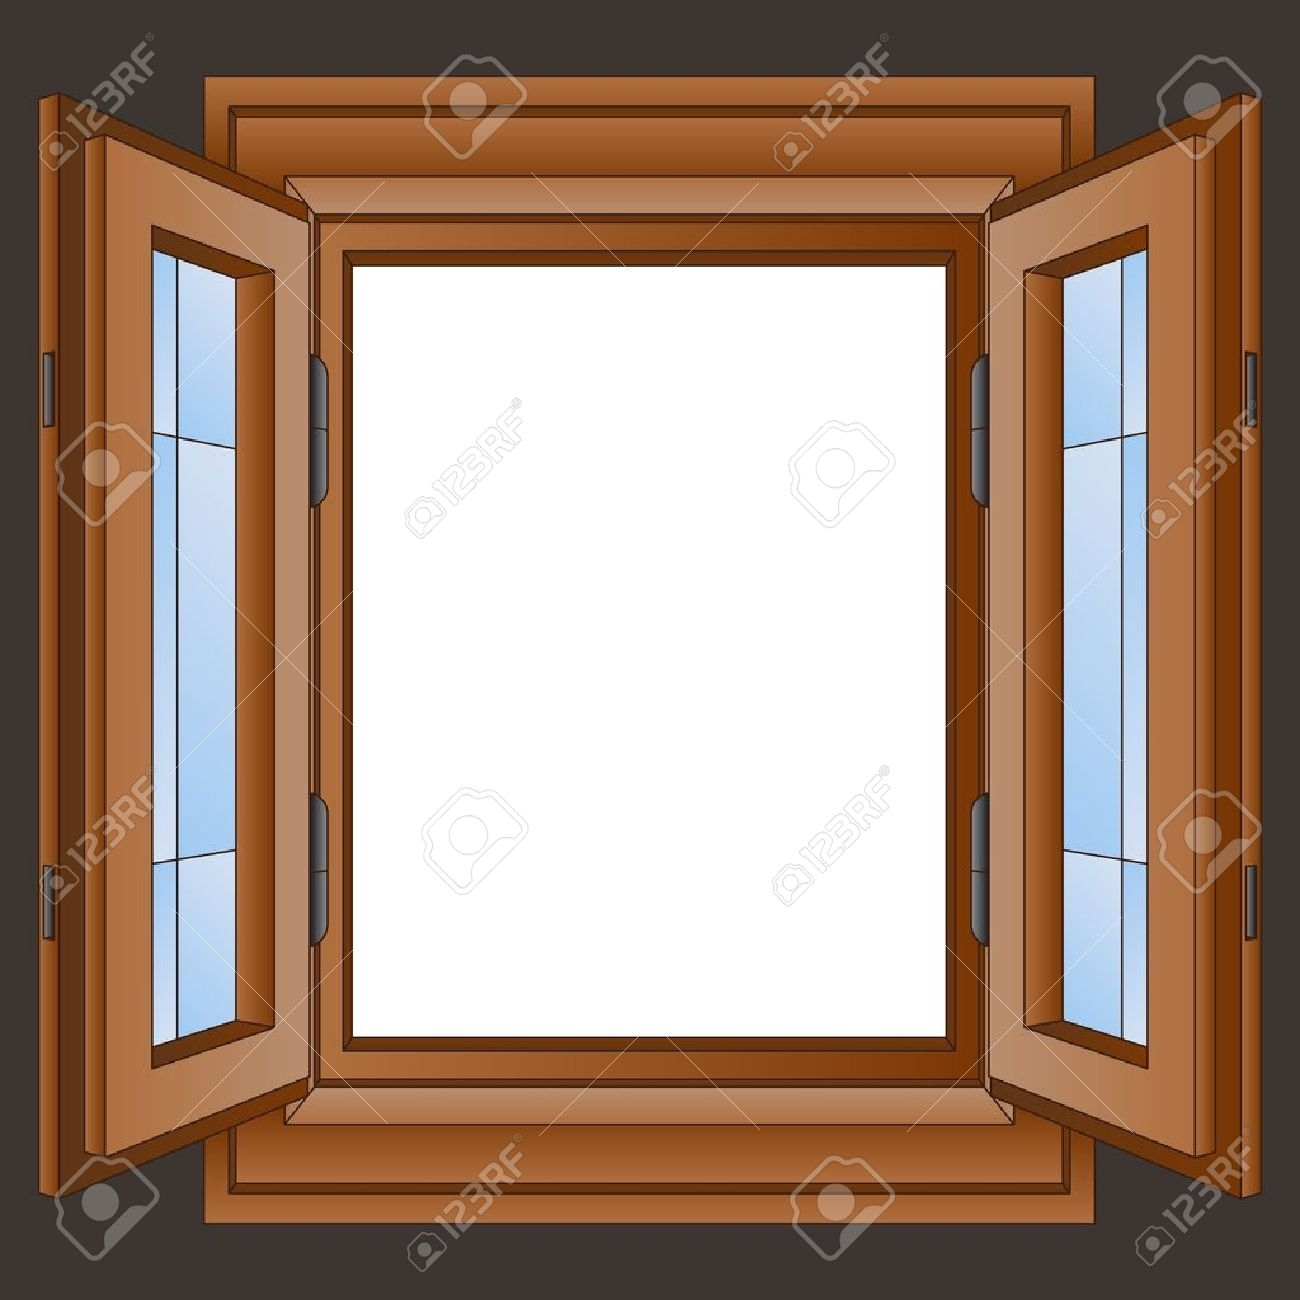 Open Wooden Window Frame In The Wall Vector Illustration Royalty Regarding Most Up To Date Window Frame Wall Art (View 9 of 15)